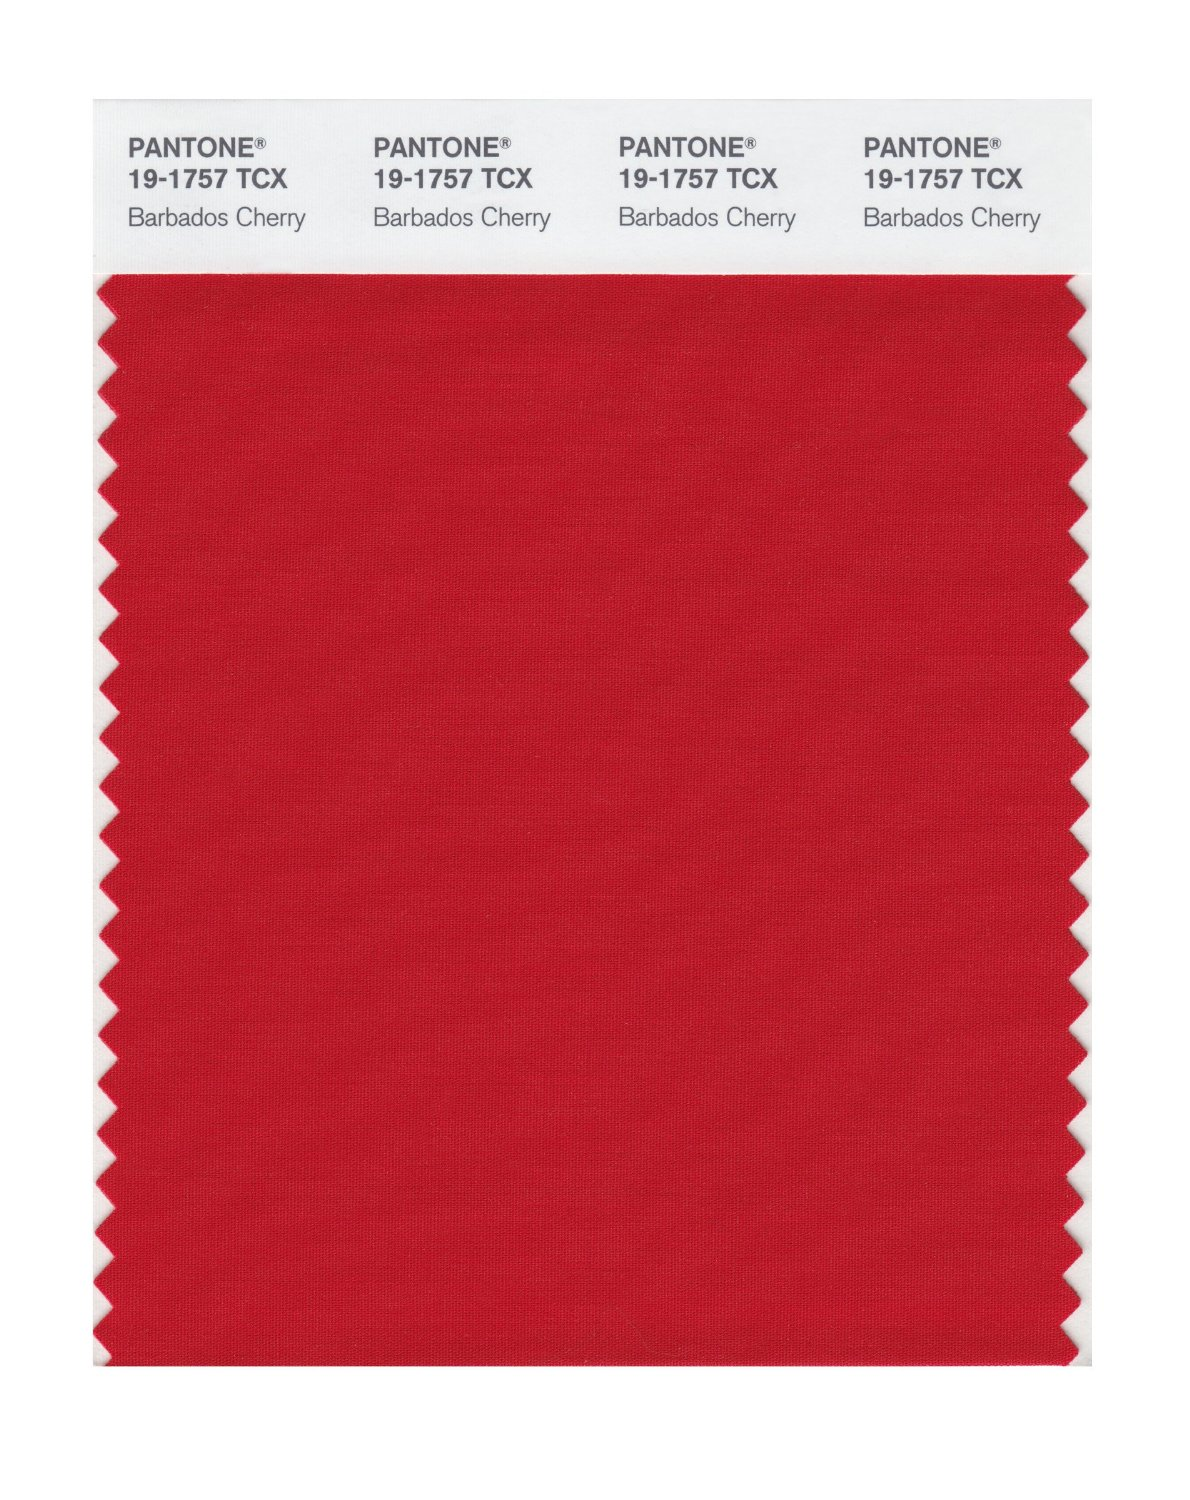 Pantone Smart Swatch 19-1757 Barbados Cherry